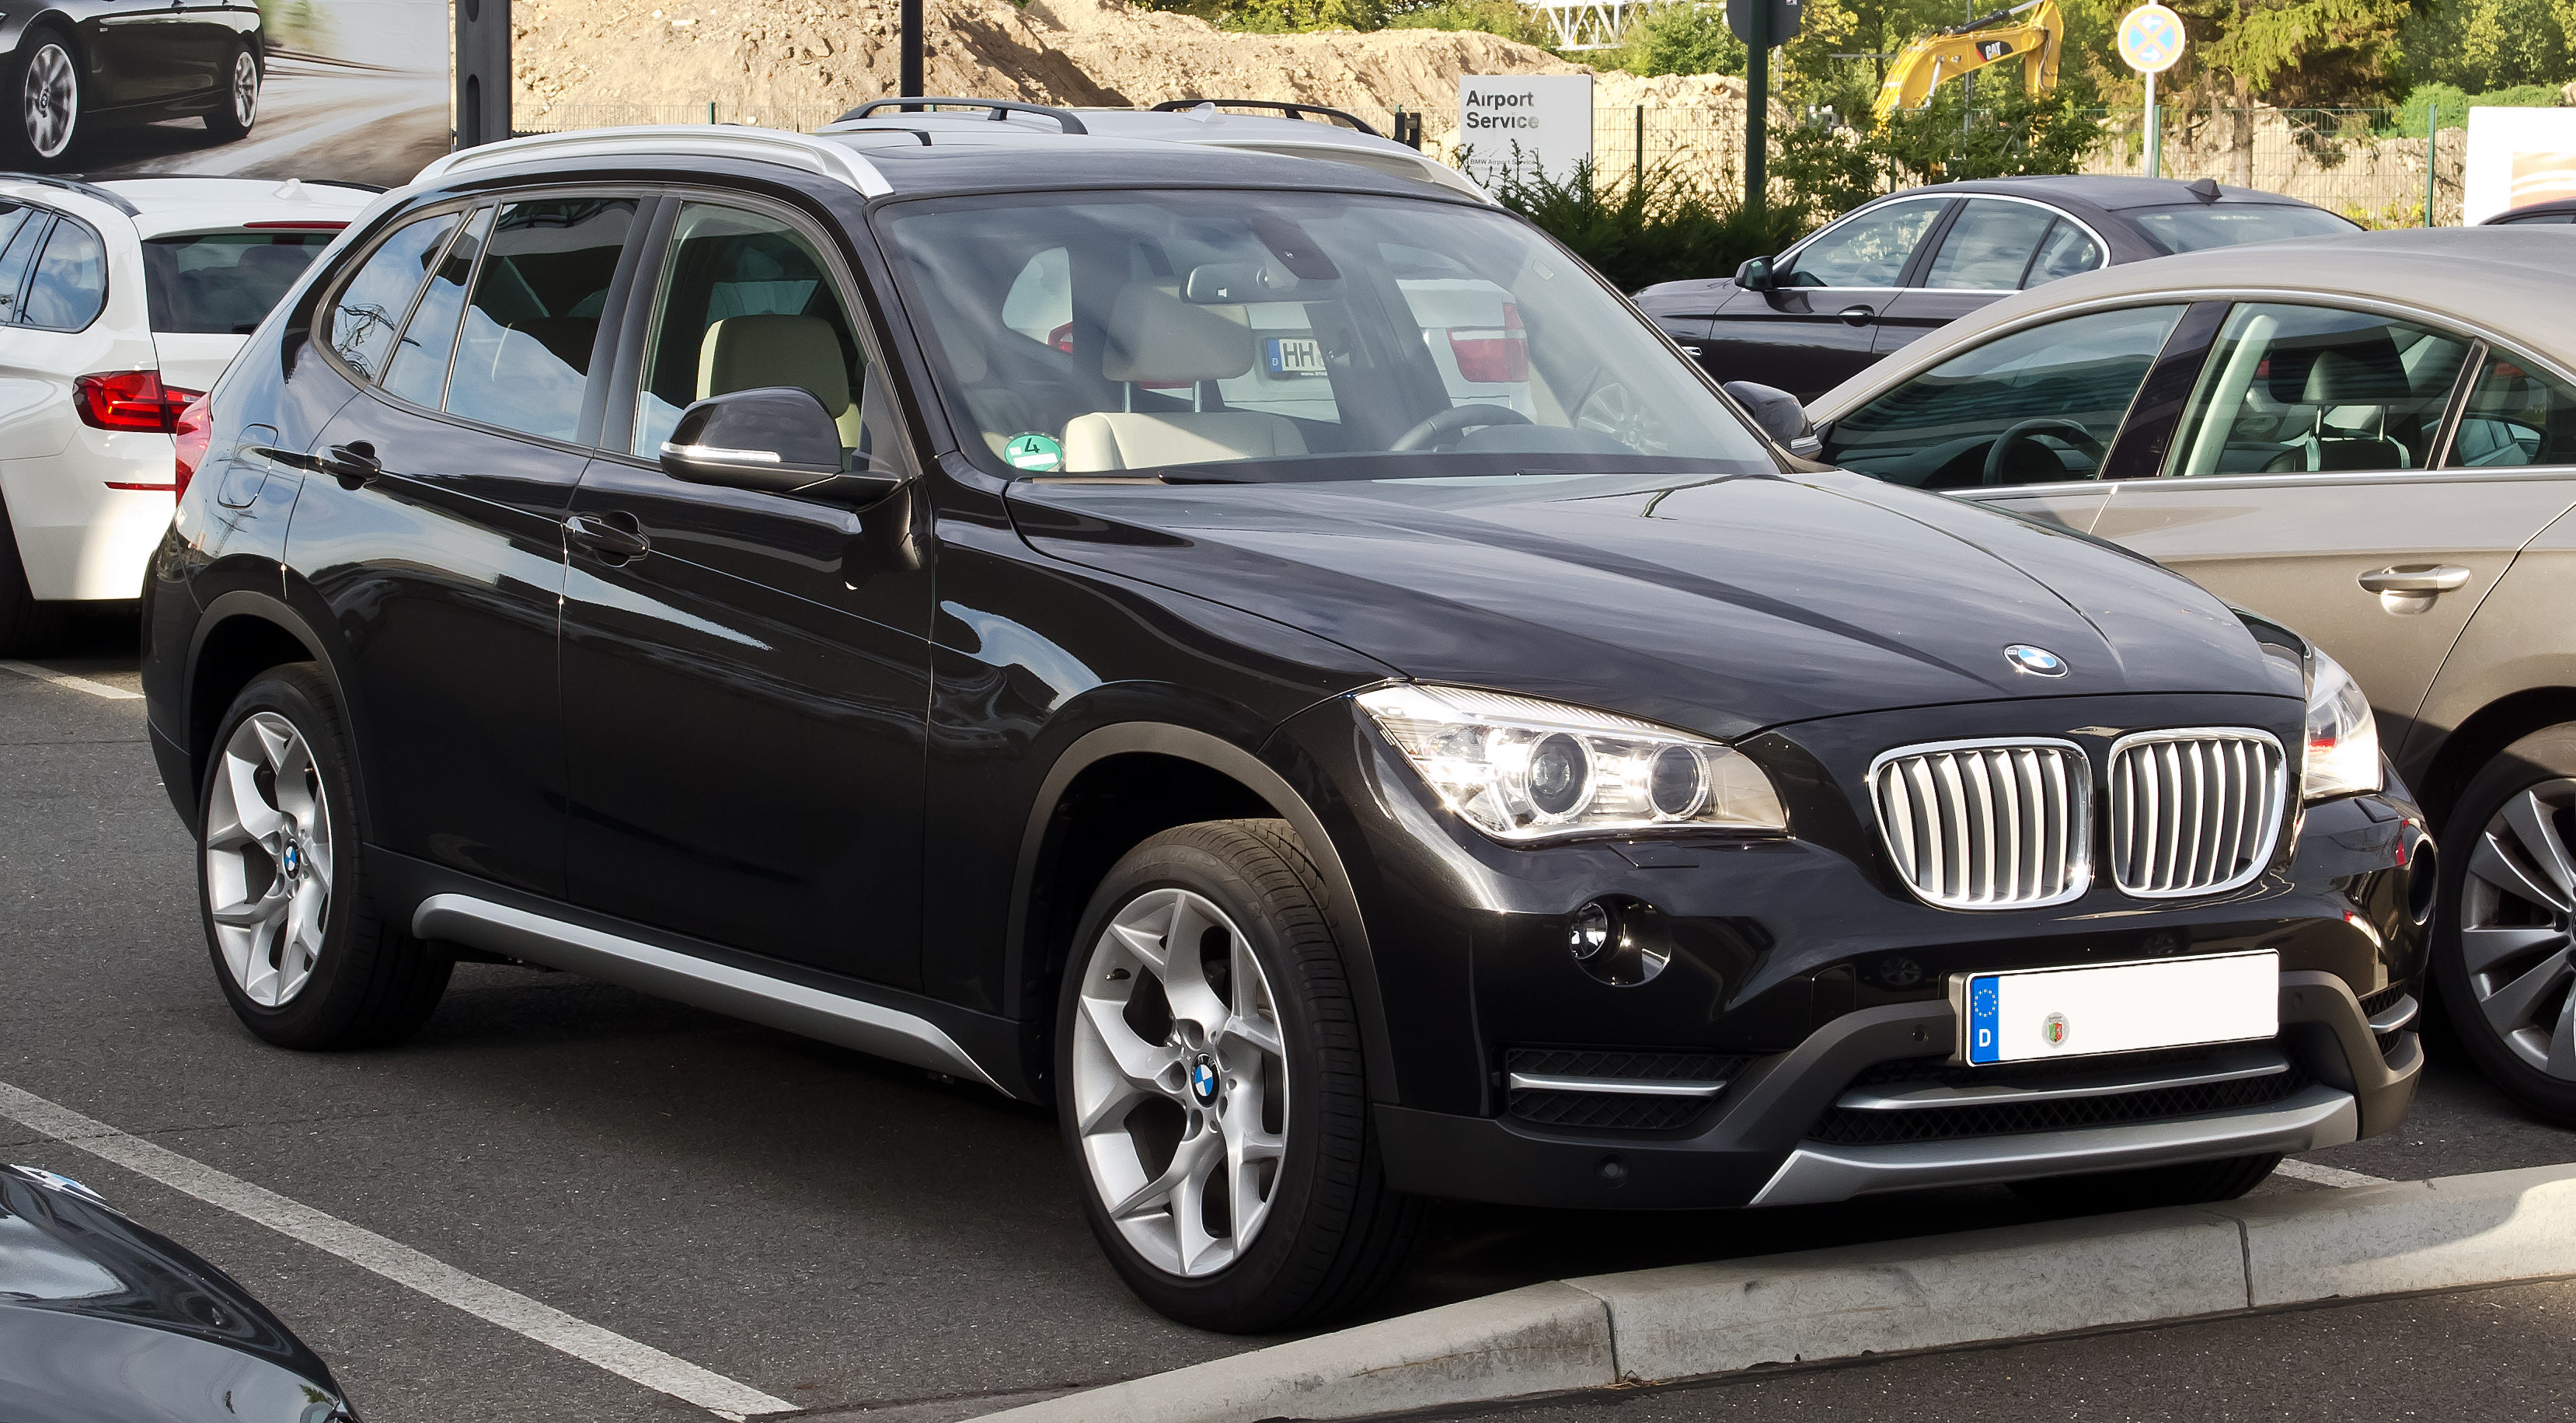 FileBMW X1 E84 Facelift Frontansicht 2 September 2012